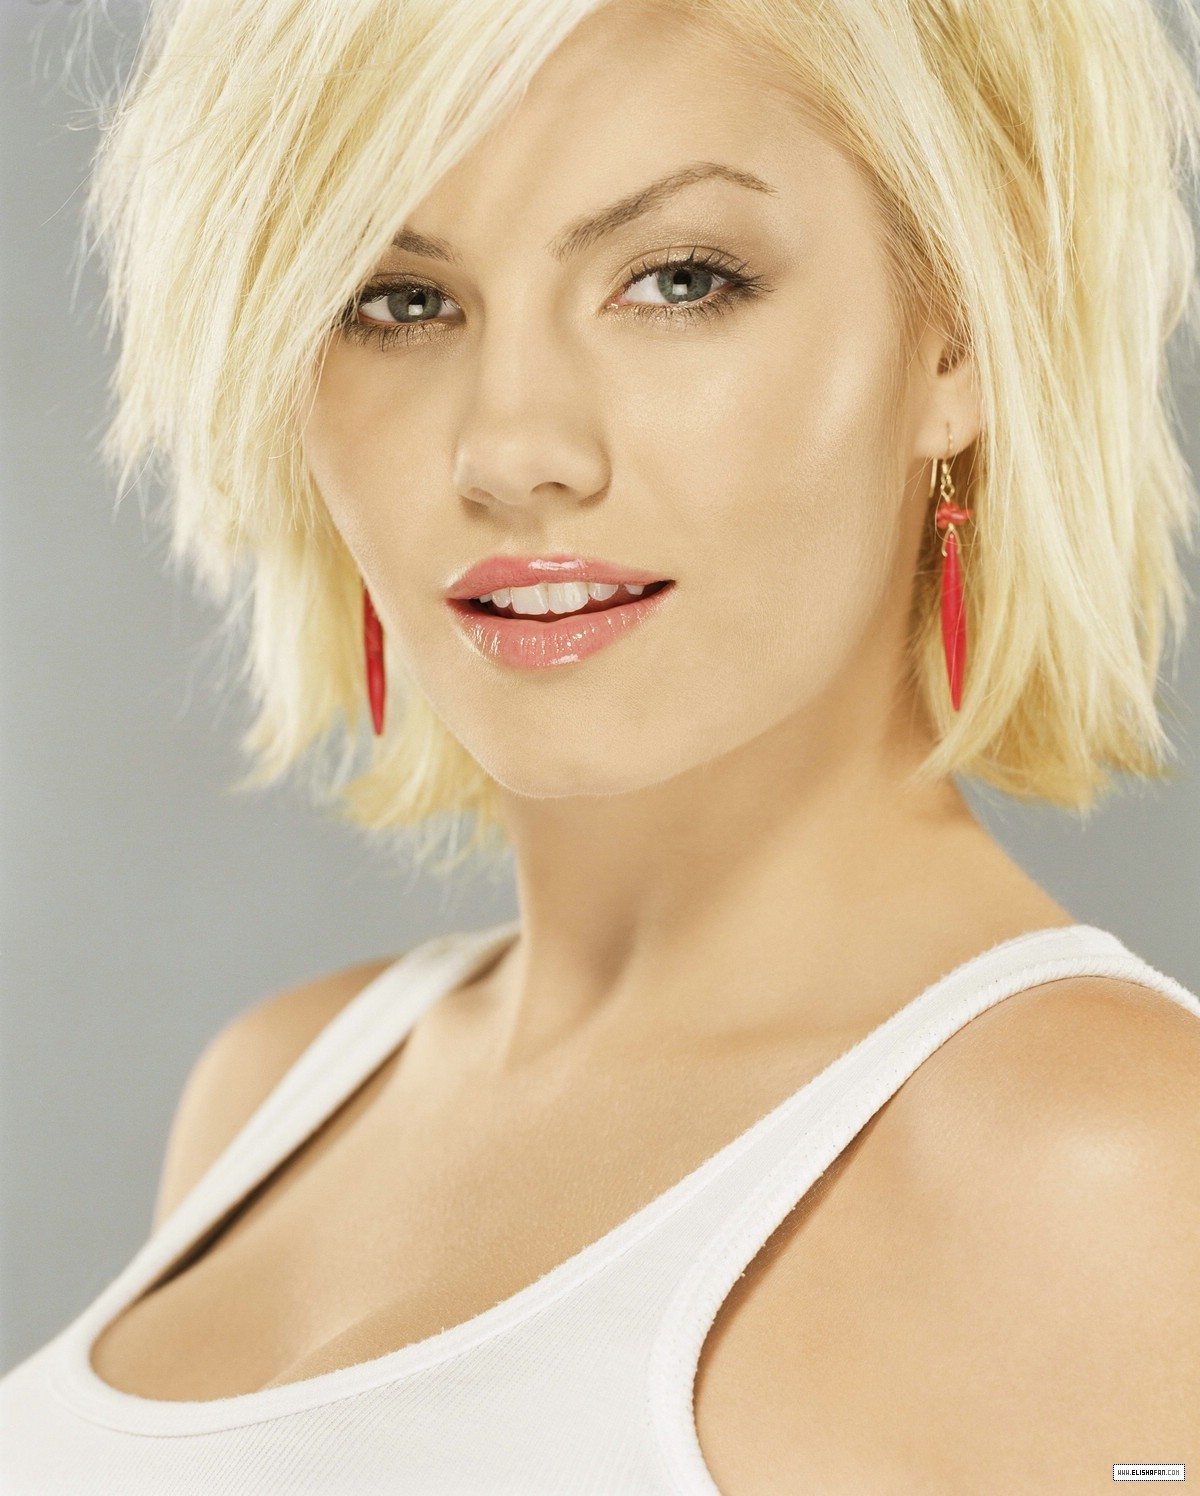 Elisha Elisha Cuthbert Photo 13580439 Fanpop